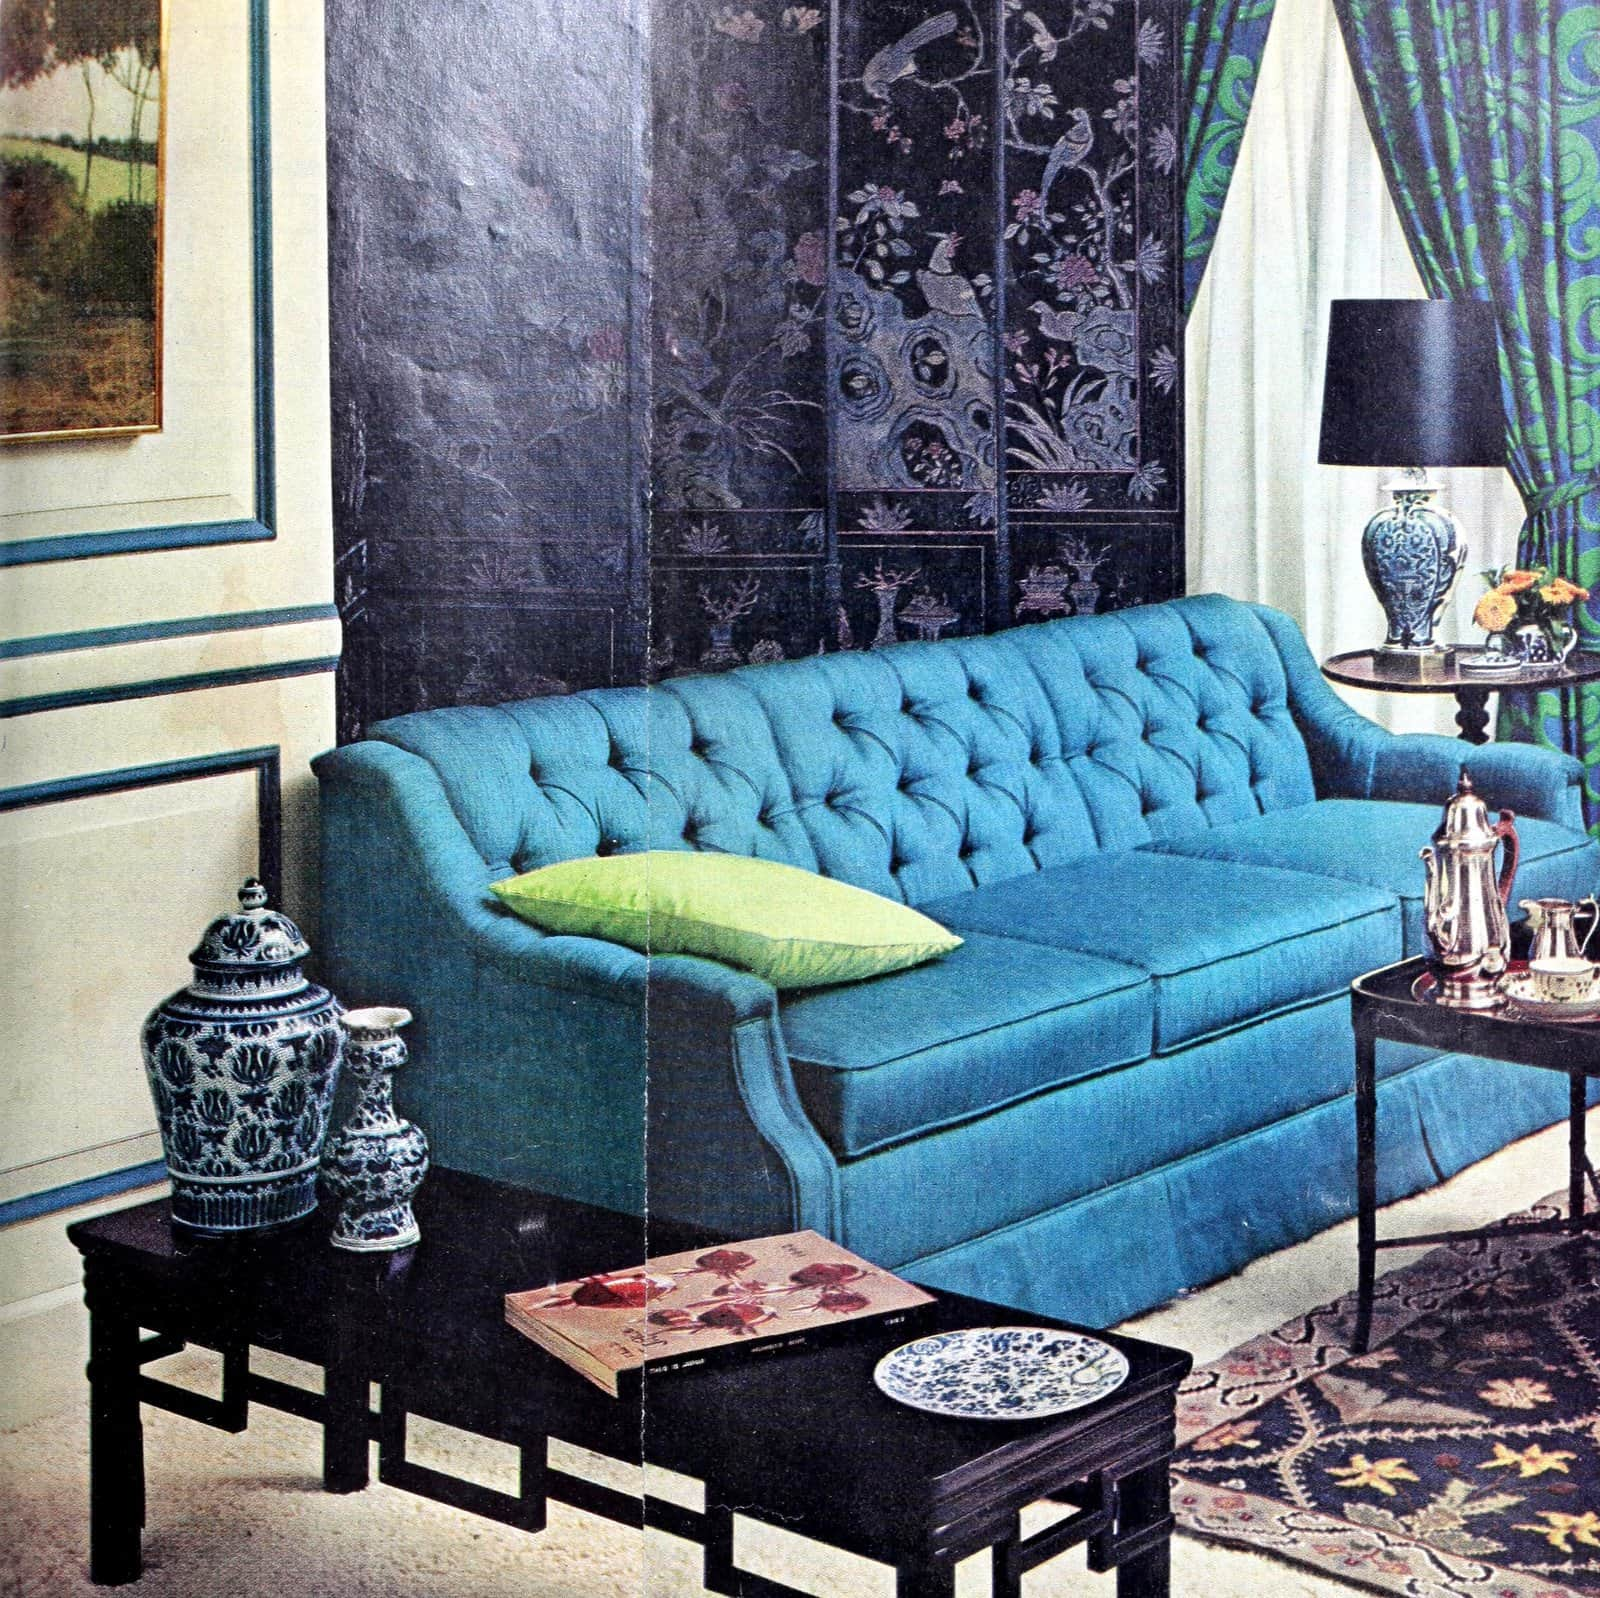 1960s living room decor with a bright blue sofa (1968)